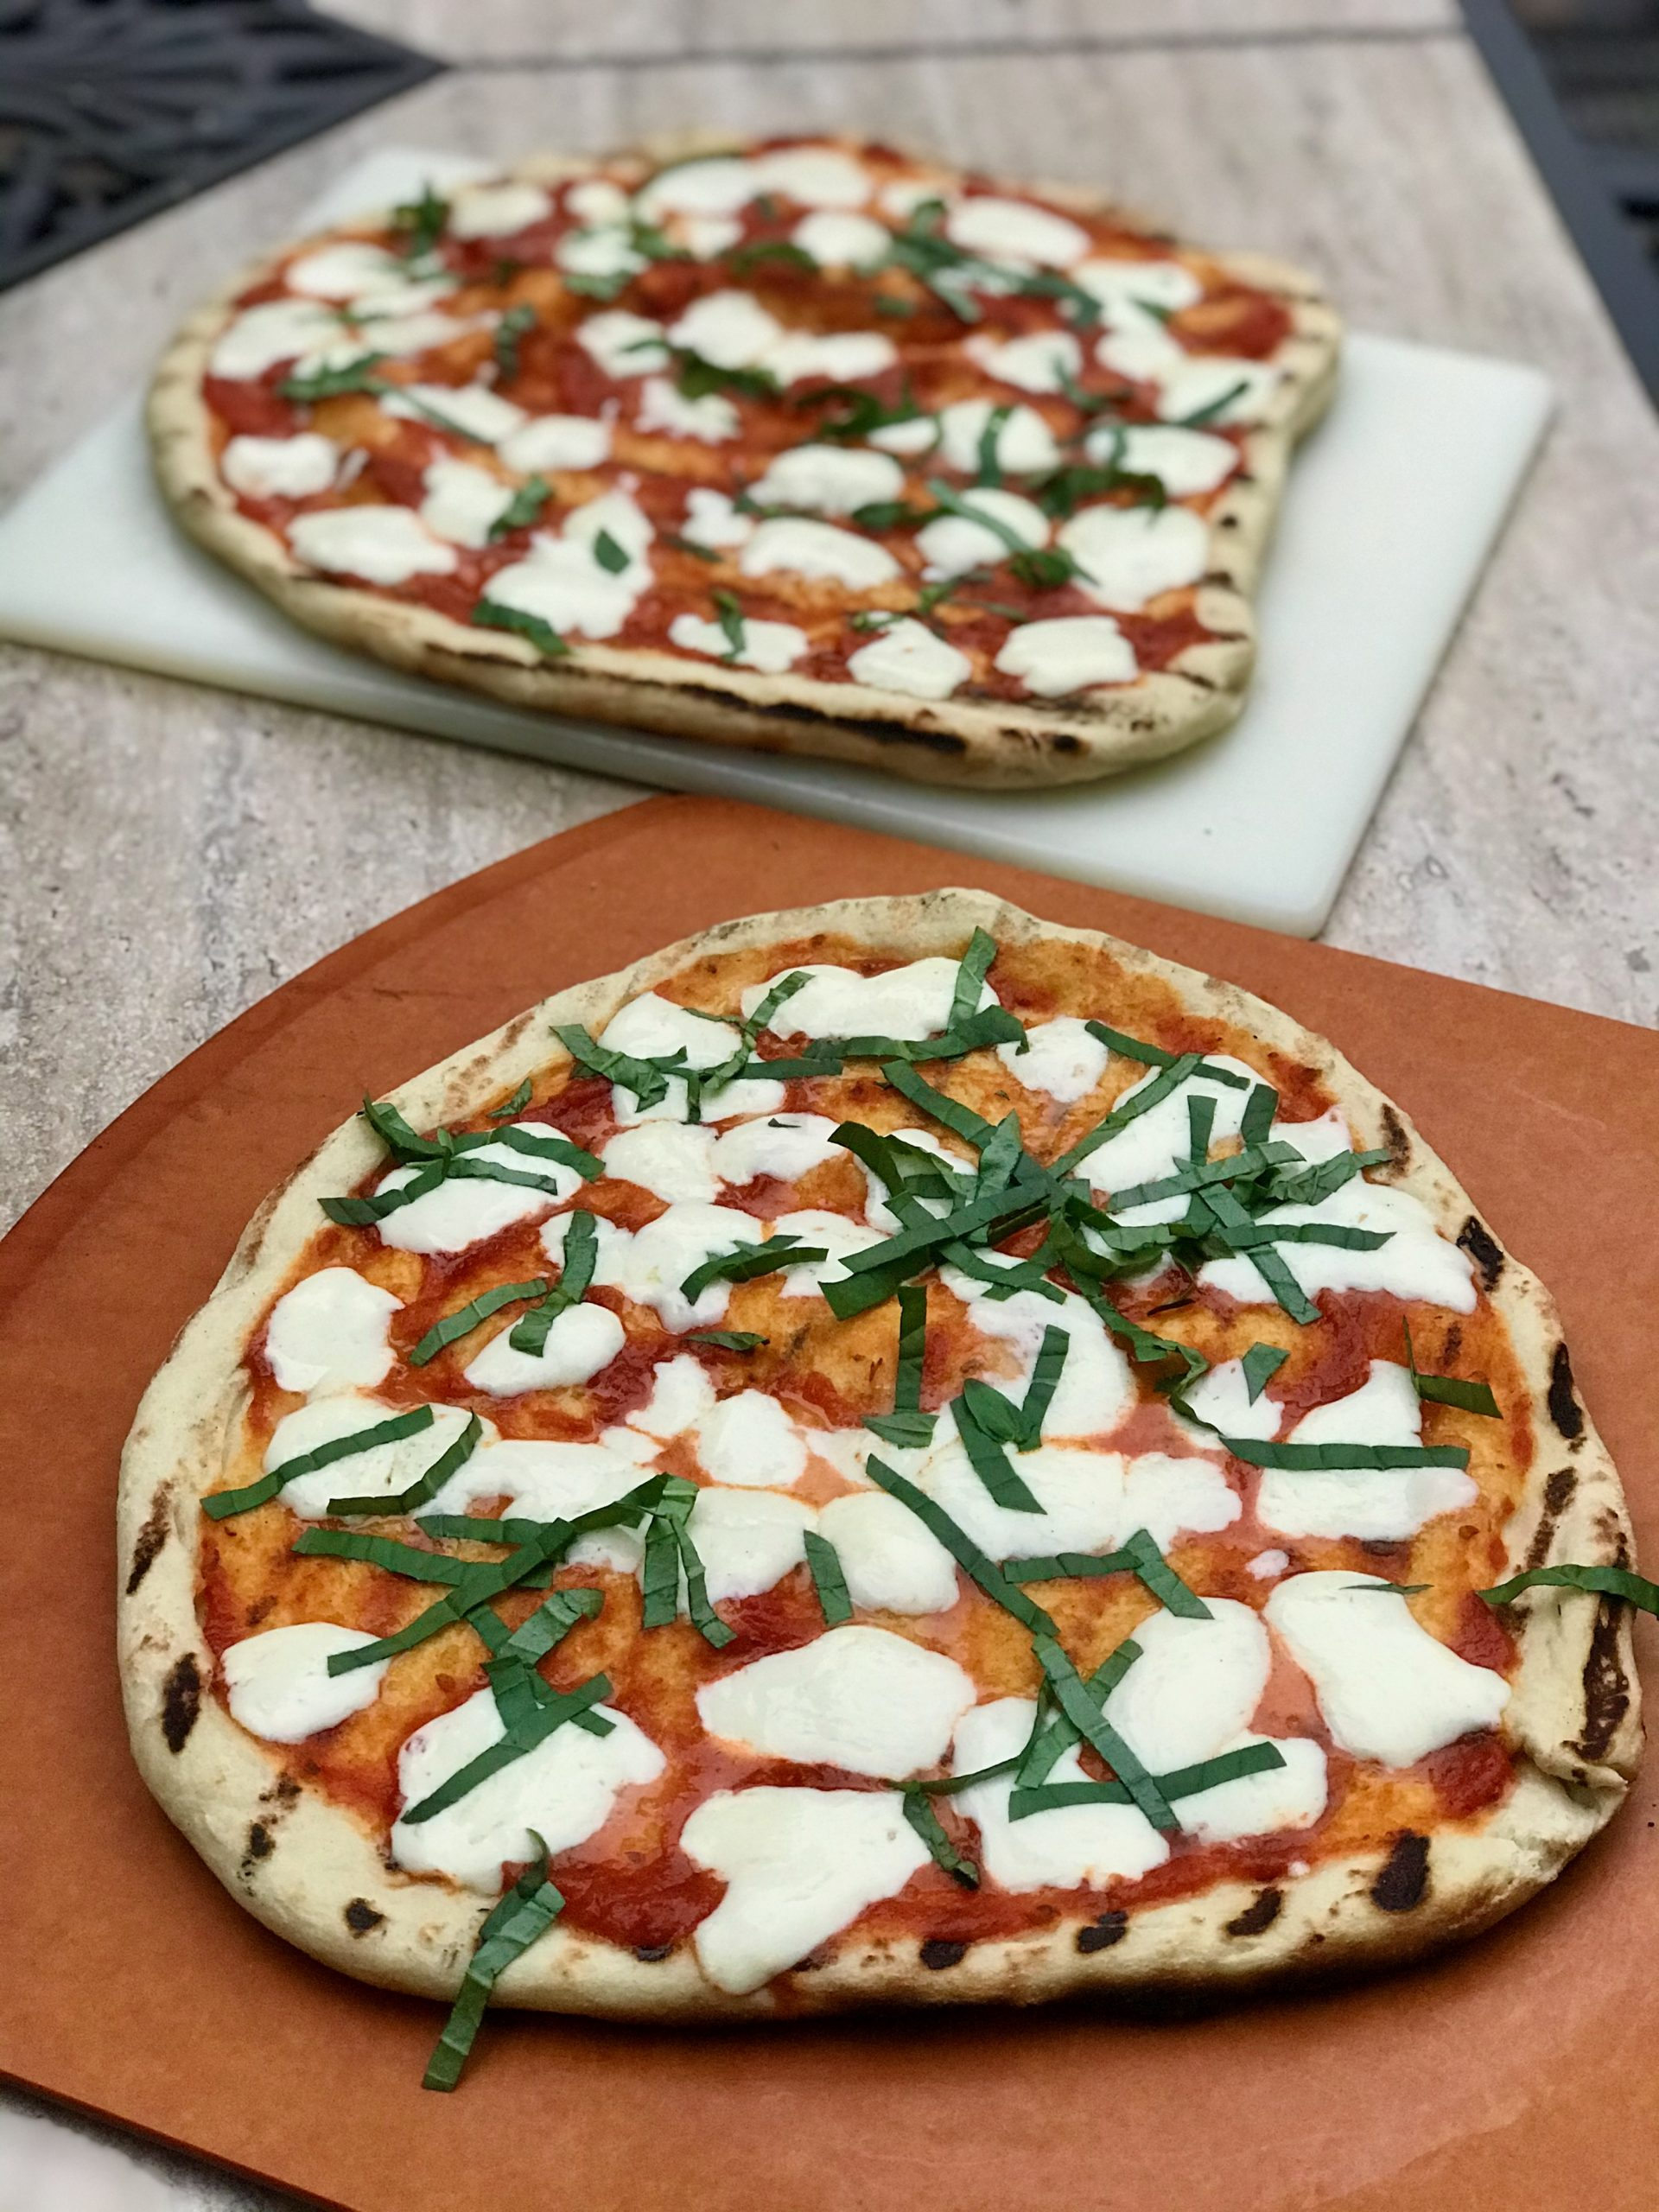 two grilled margarita pizzas on table